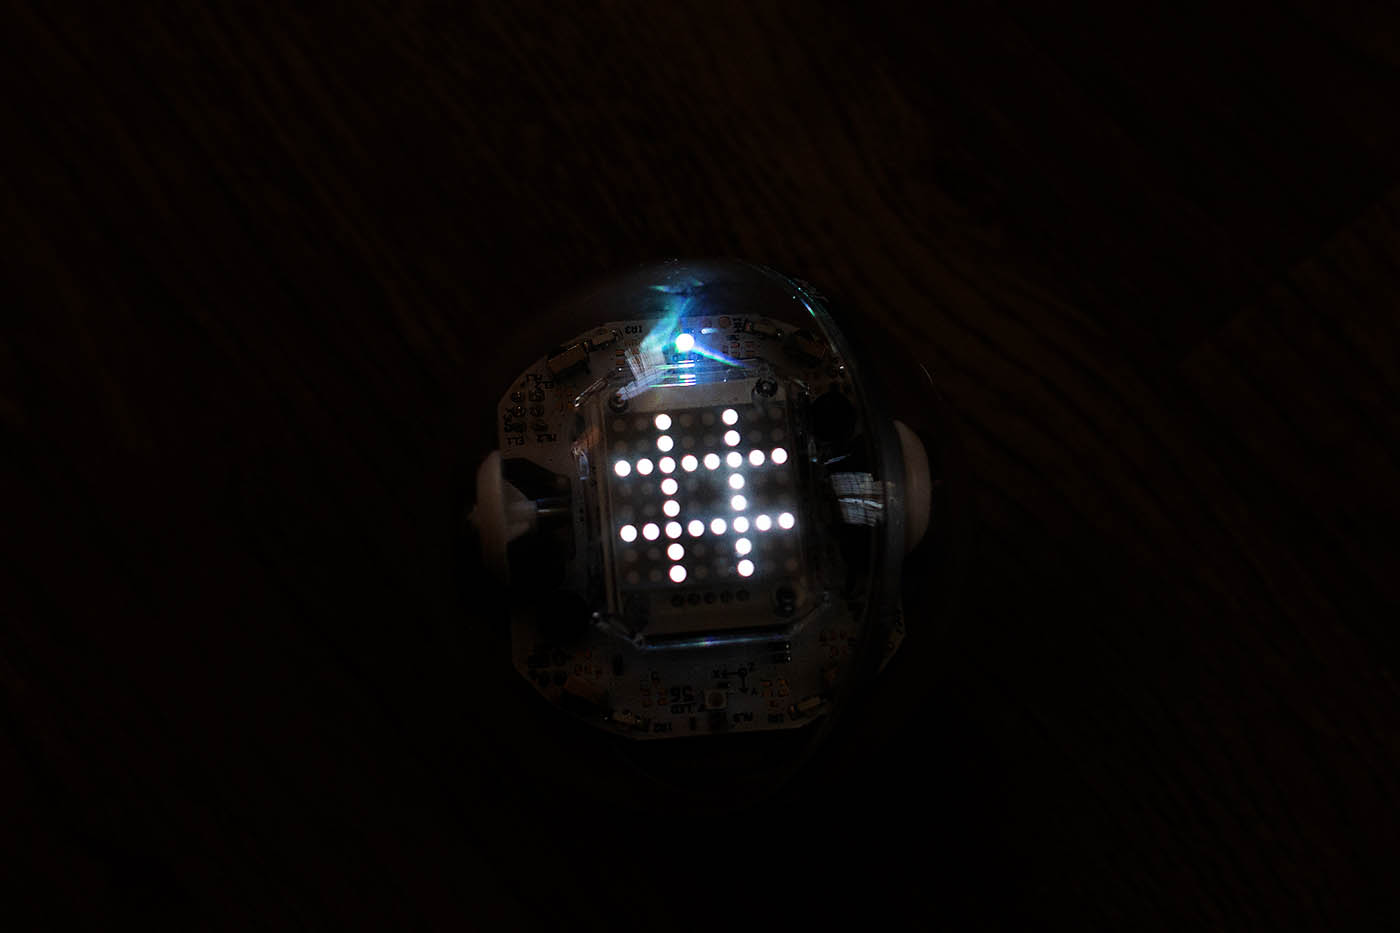 Check Out the Latest Robot from Sphero - Sphero BOLT!